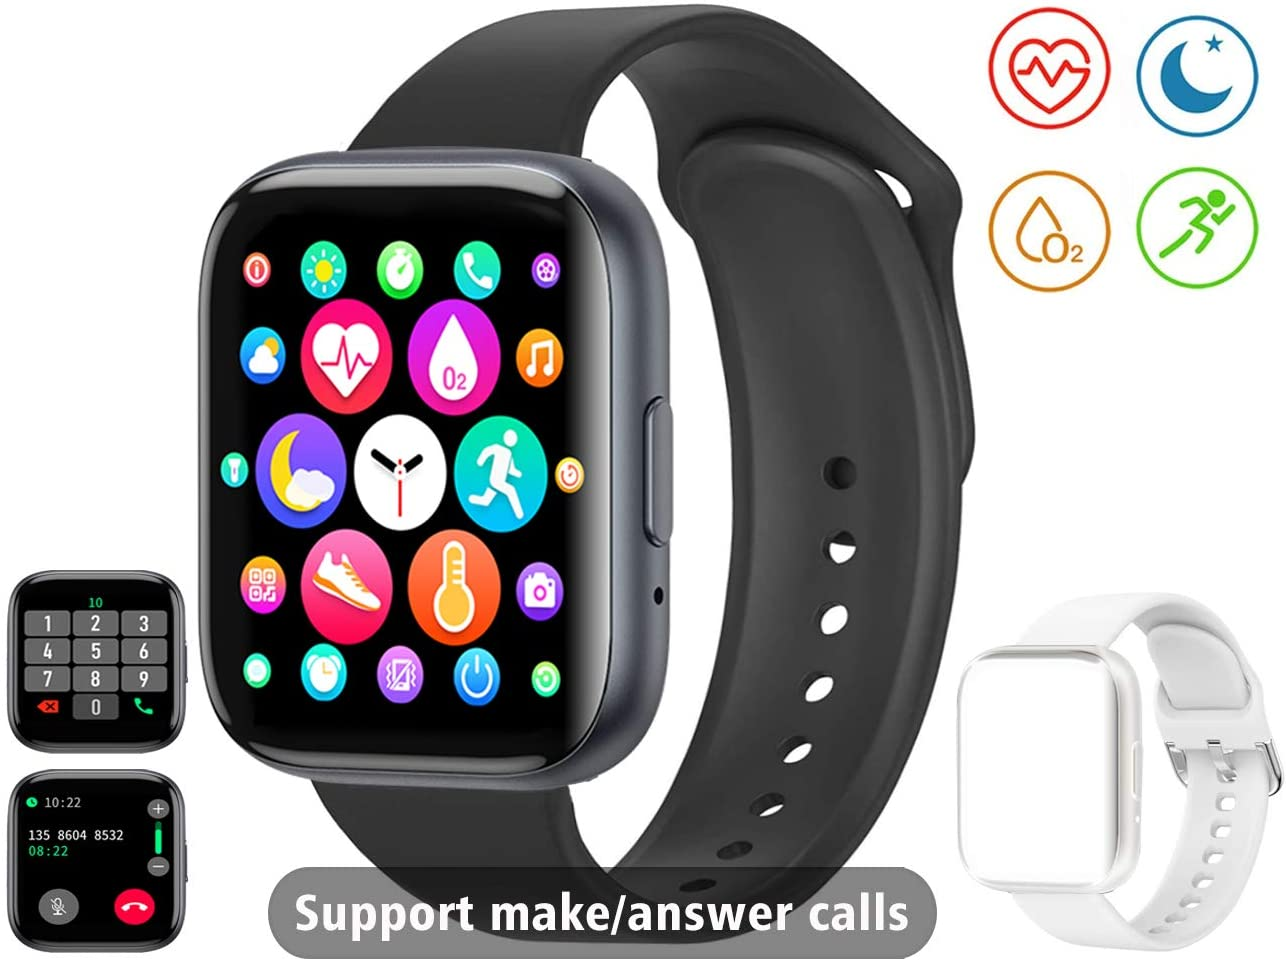 Smart Watch Receive/Make Call,Fitness Tracker with 1.54 Full Touch Life Water-Resistant SpO2 Heart Rate Sleep Monitor,Step/Calorie,Bluetooth Call Smart Watch for Women Men Android iOS Phone (Black)